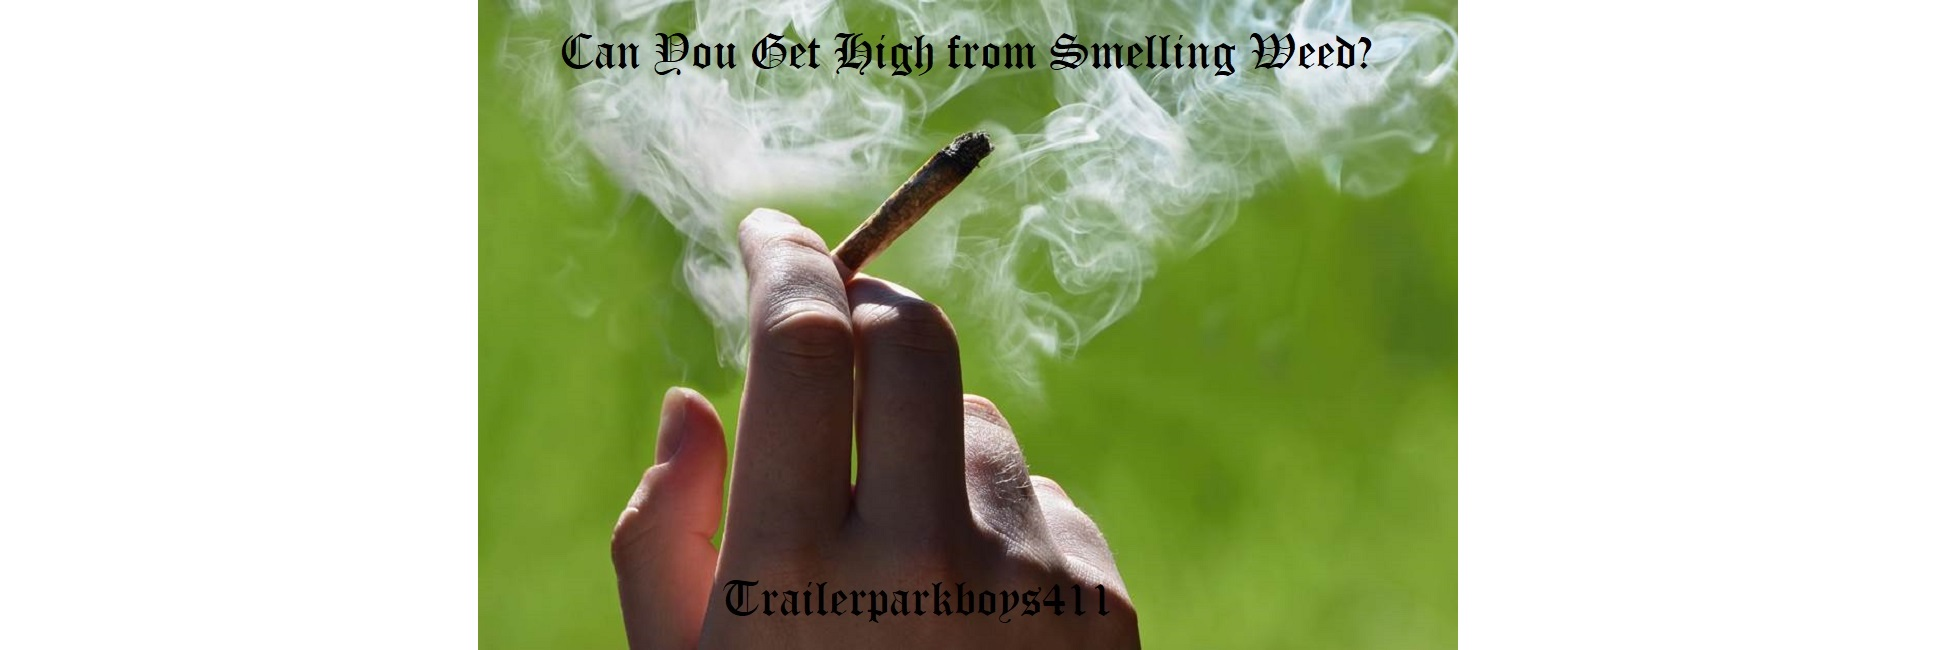 Can You Get High from Smelling Weed